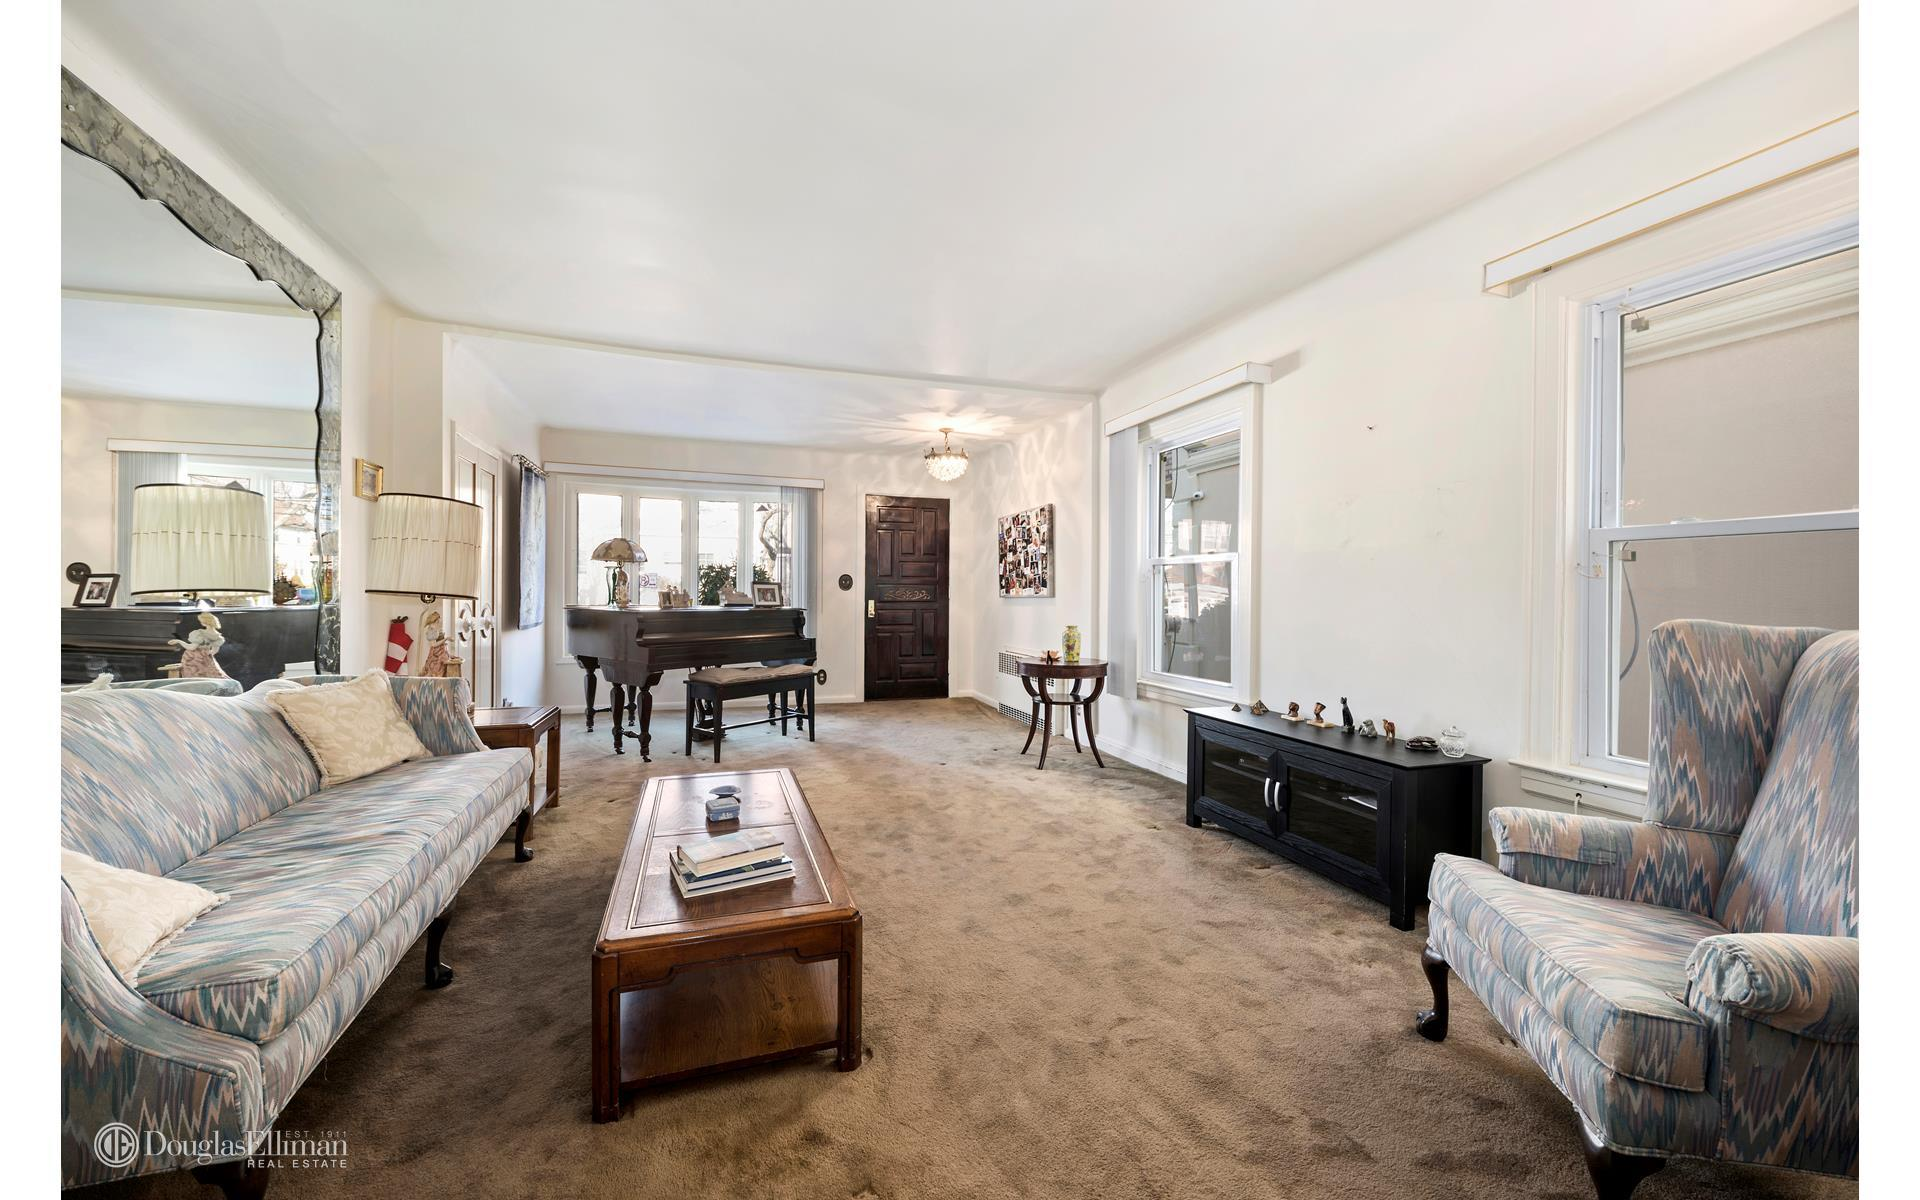 1080 78th St, Brooklyn, NY 11228 - Estimate and Home Details | Trulia